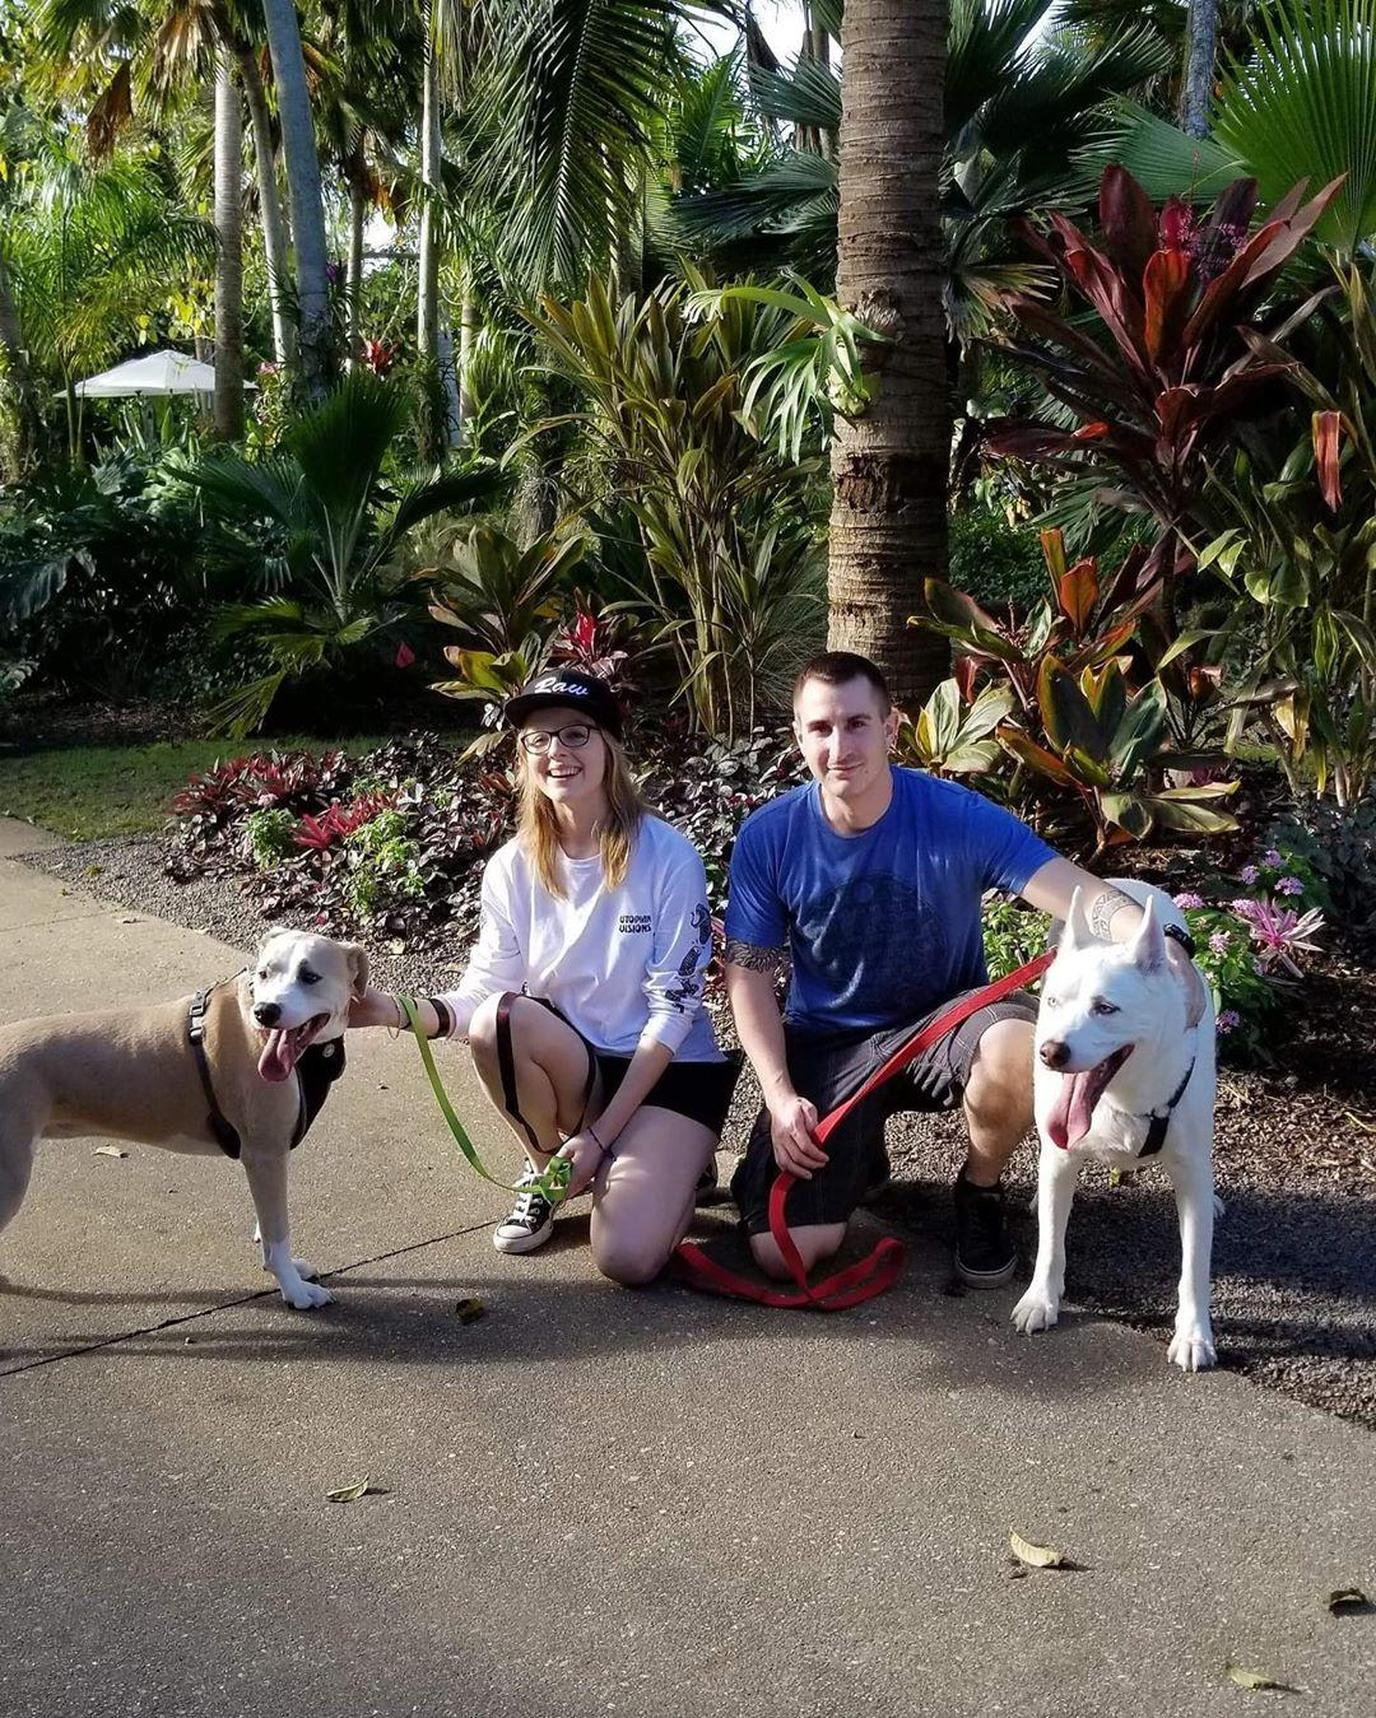 A Couple Poses With Their Dogs in Pet-Friendly Naples.